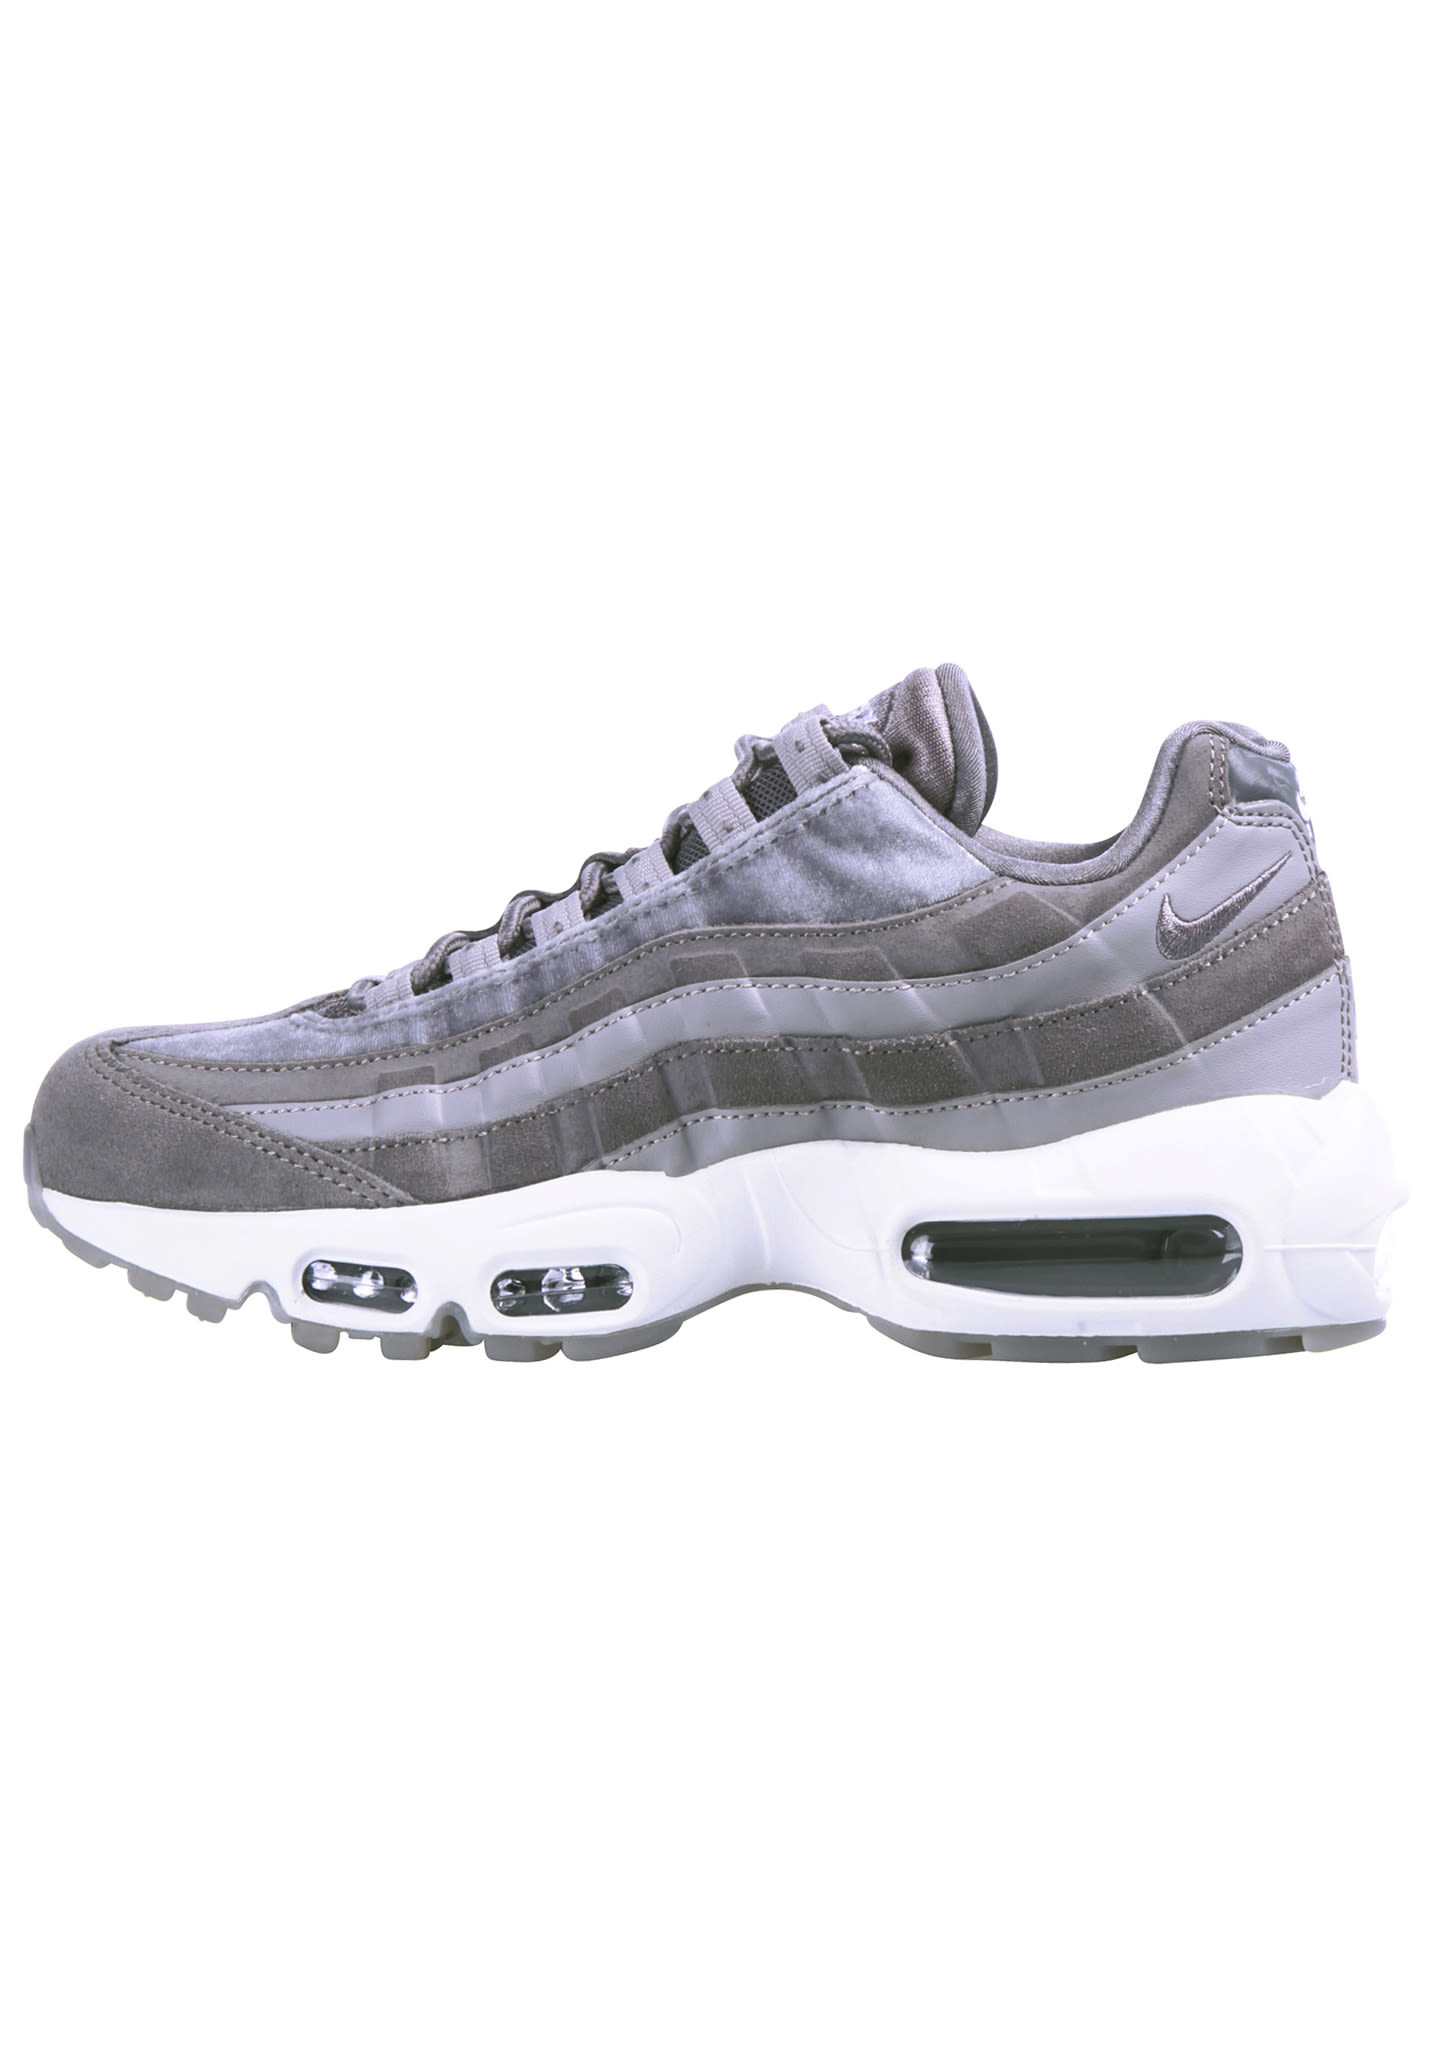 nike air max 95 damen rot